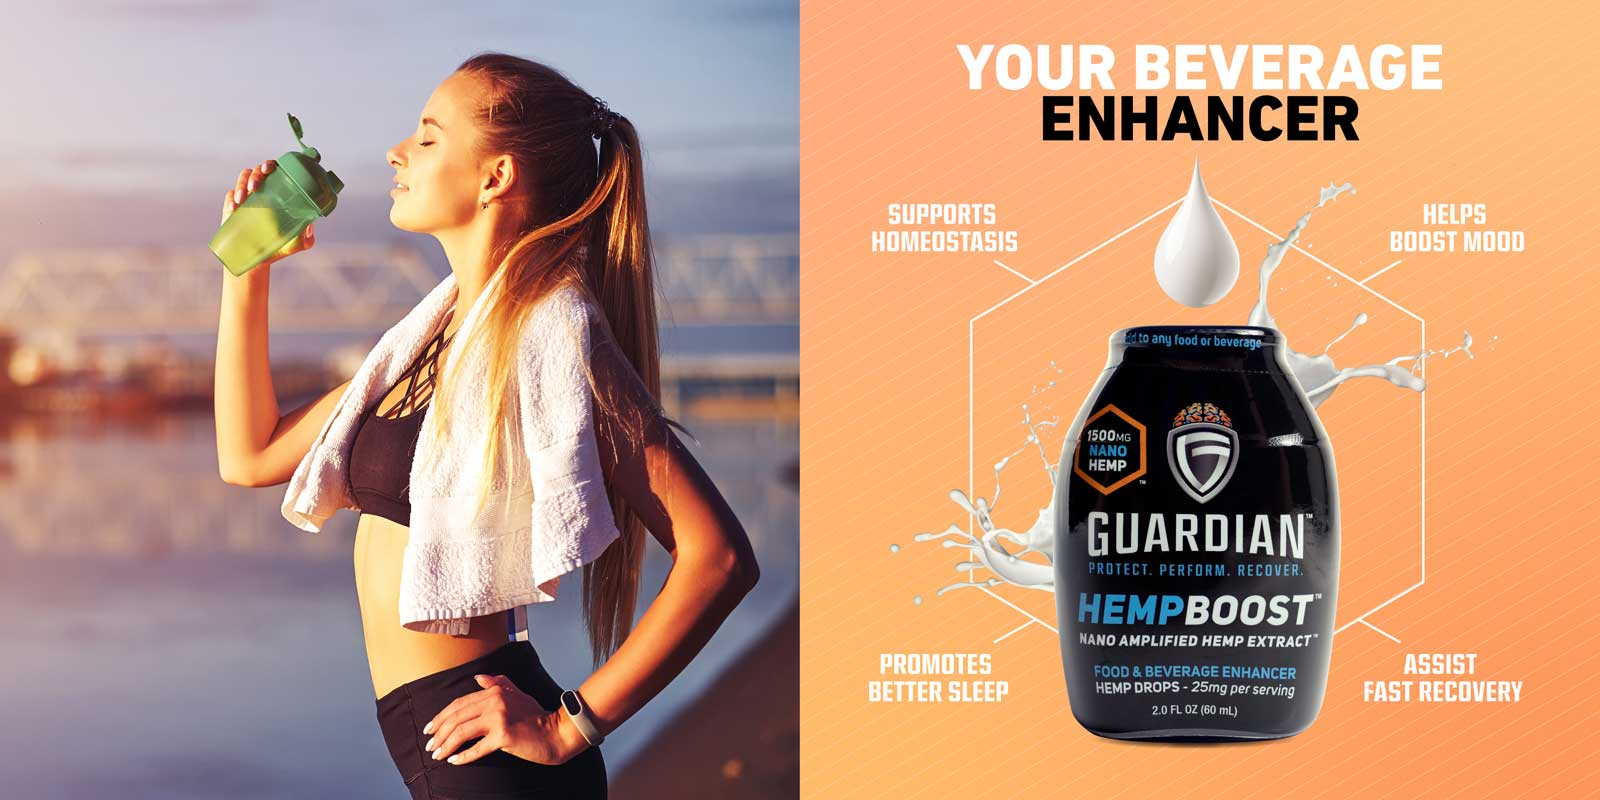 Your beverage enhancer: supports homeostasis, helps boost mood, promotes better sleep, and assist fast recovery.